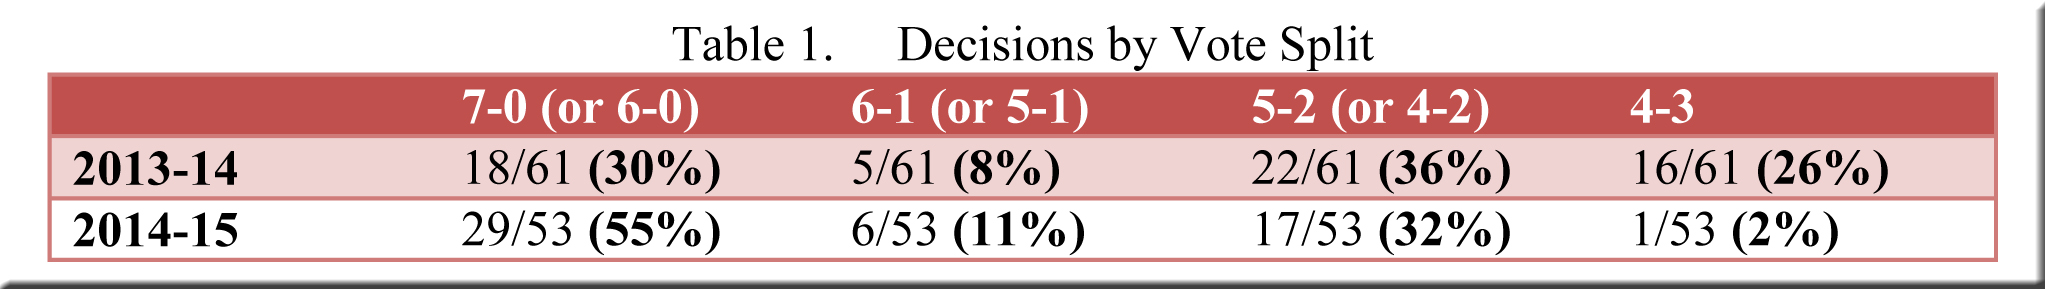 Table 1--Decisions by vote split--2013-14 and 2014-15